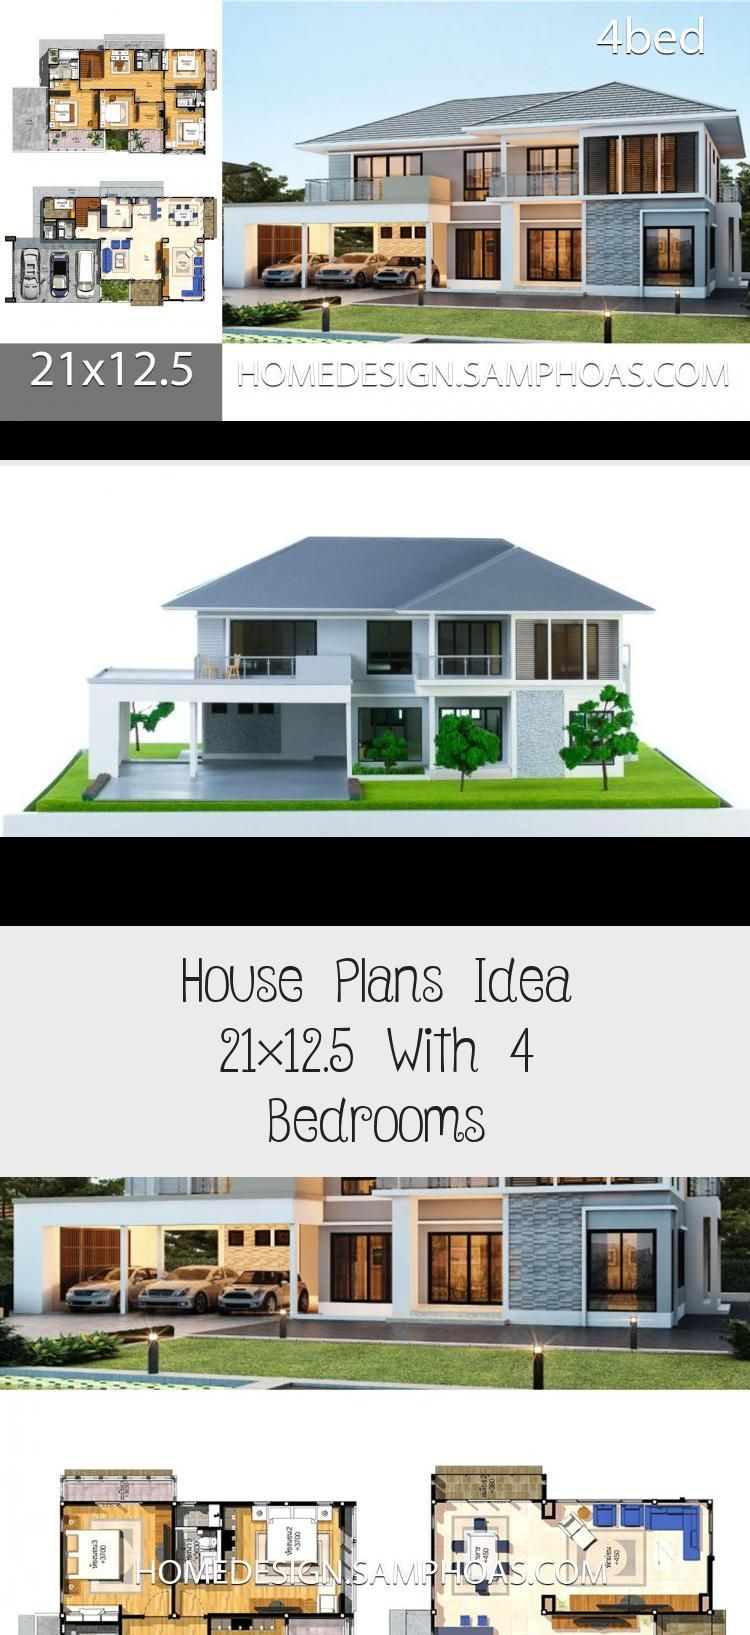 House Plans Idea 21x12 5 With 4 Bedrooms Home Ideassearch Cottagefloorplans Squarefloorplans Homefloorplans Floorpl In 2020 Cottage Floor Plans House Plans House